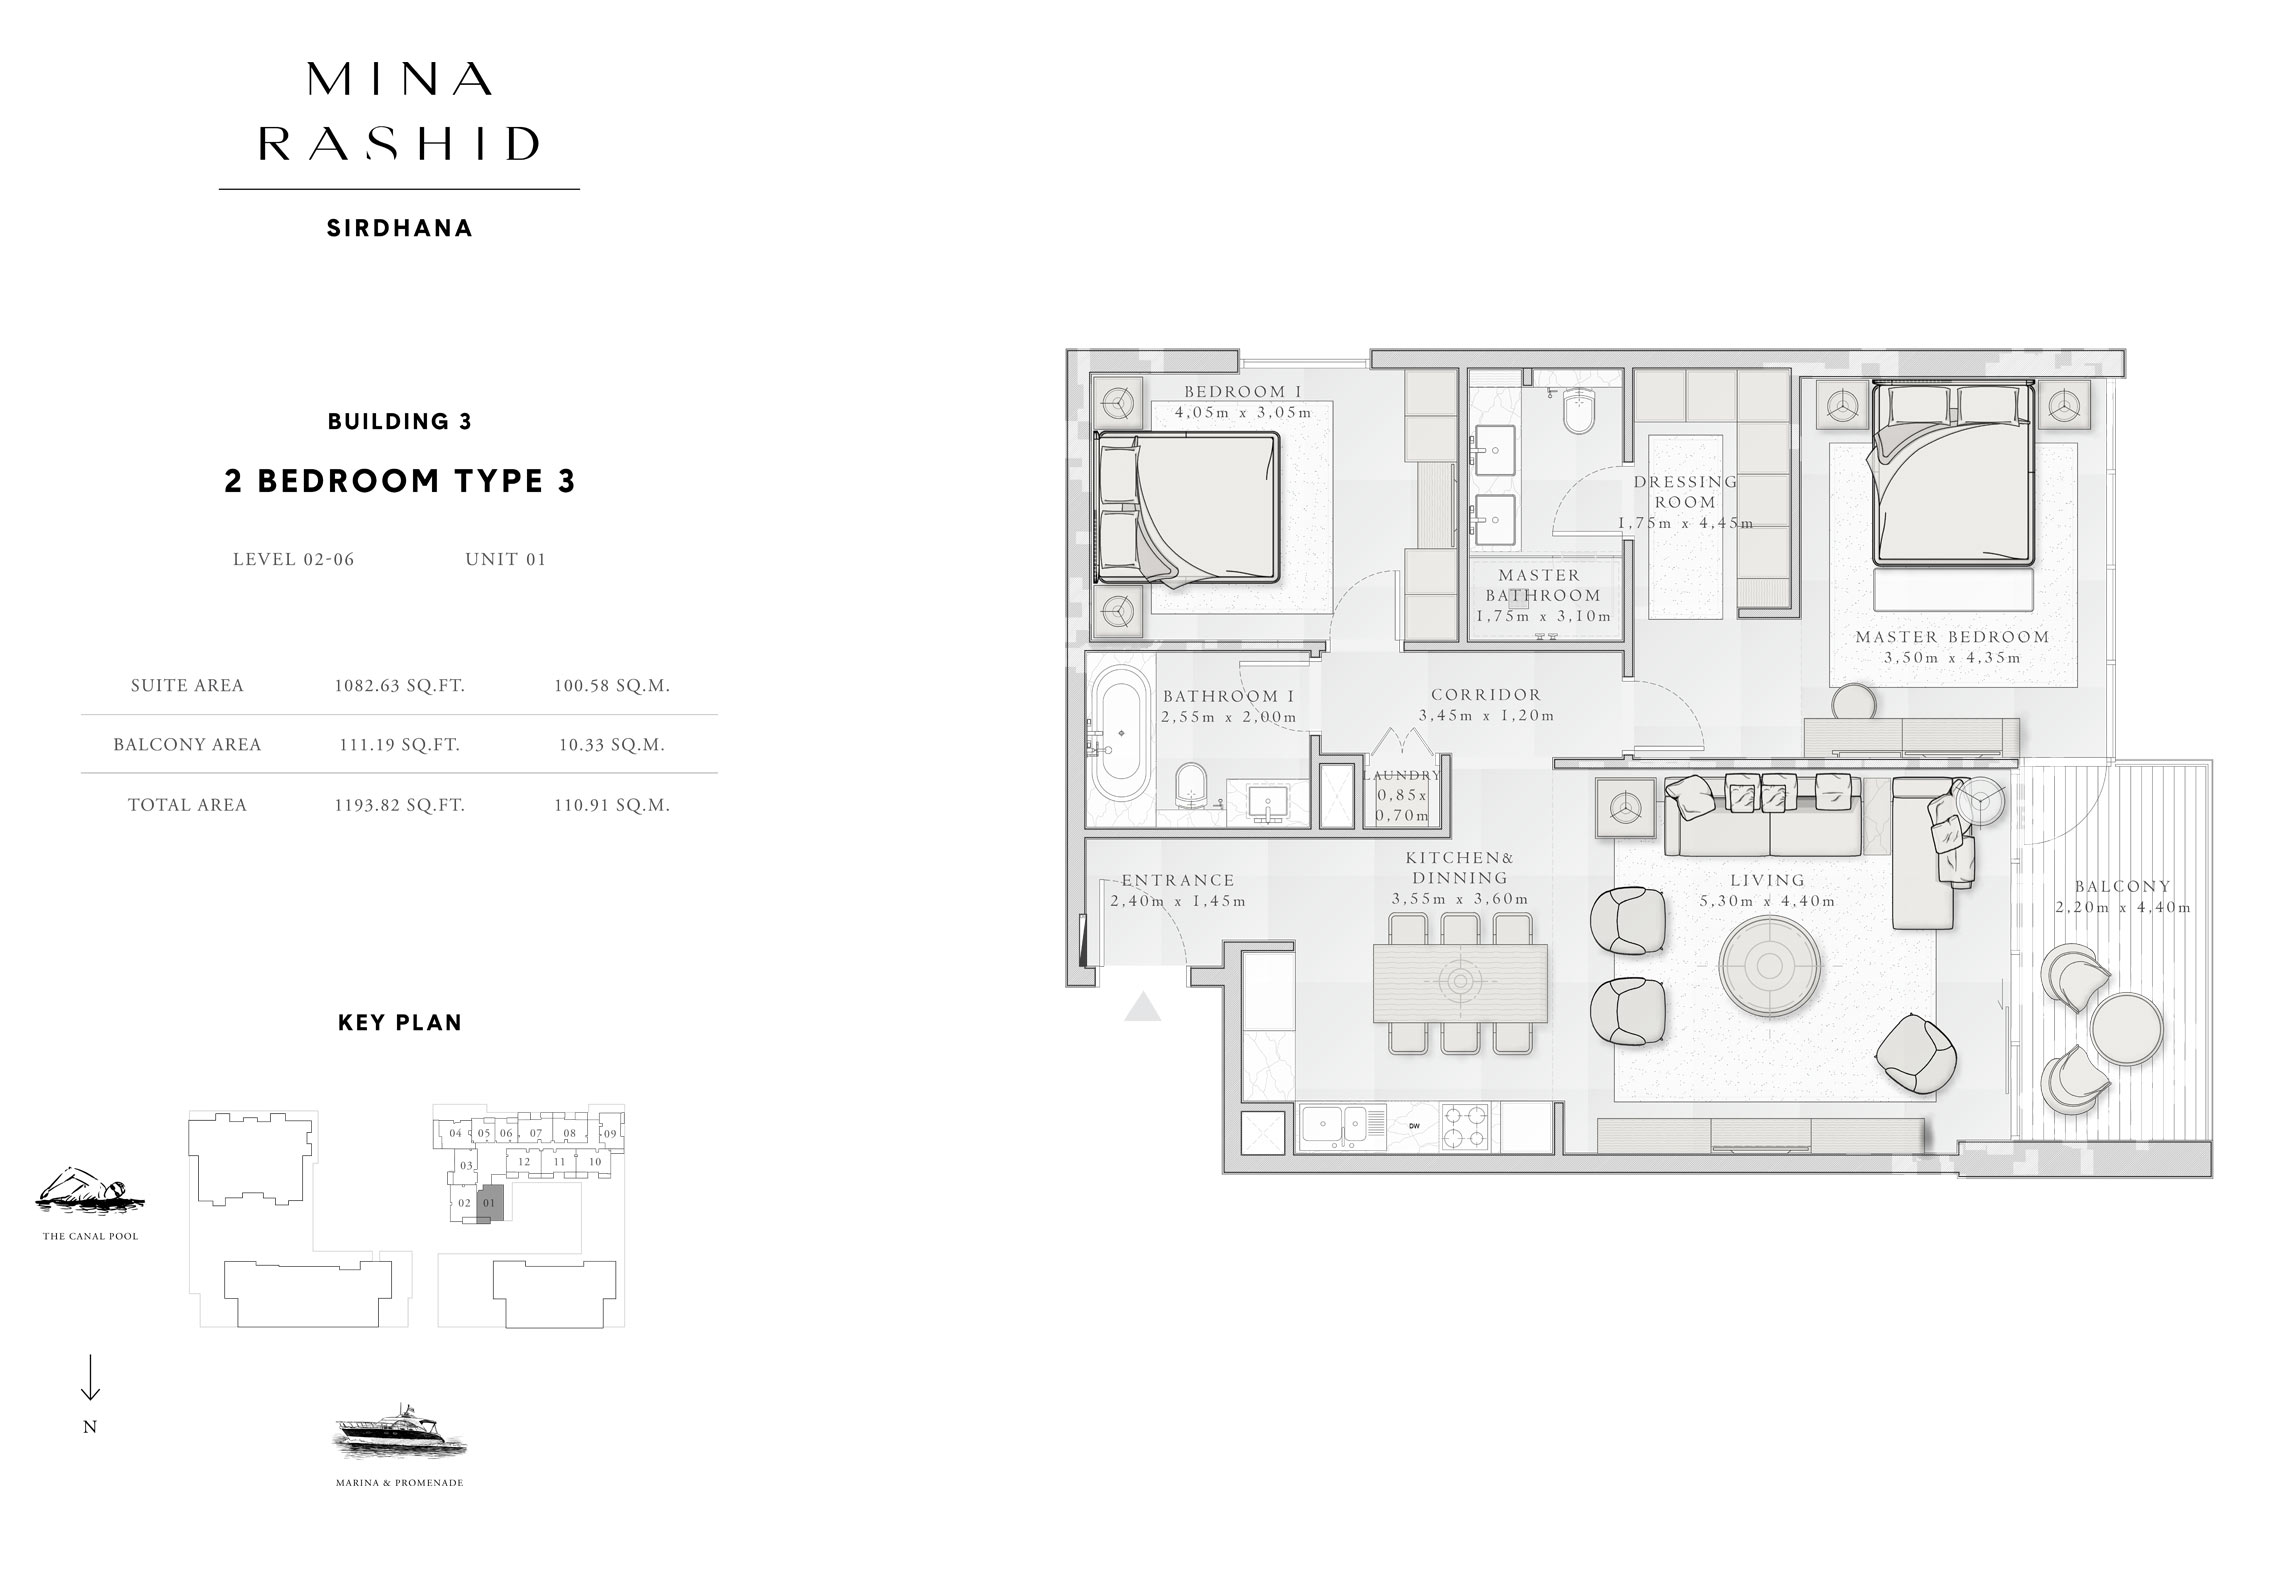 2-Bedroom-Type-3, Building-3, Level-2 to 6, Size-1193-Sq-Ft